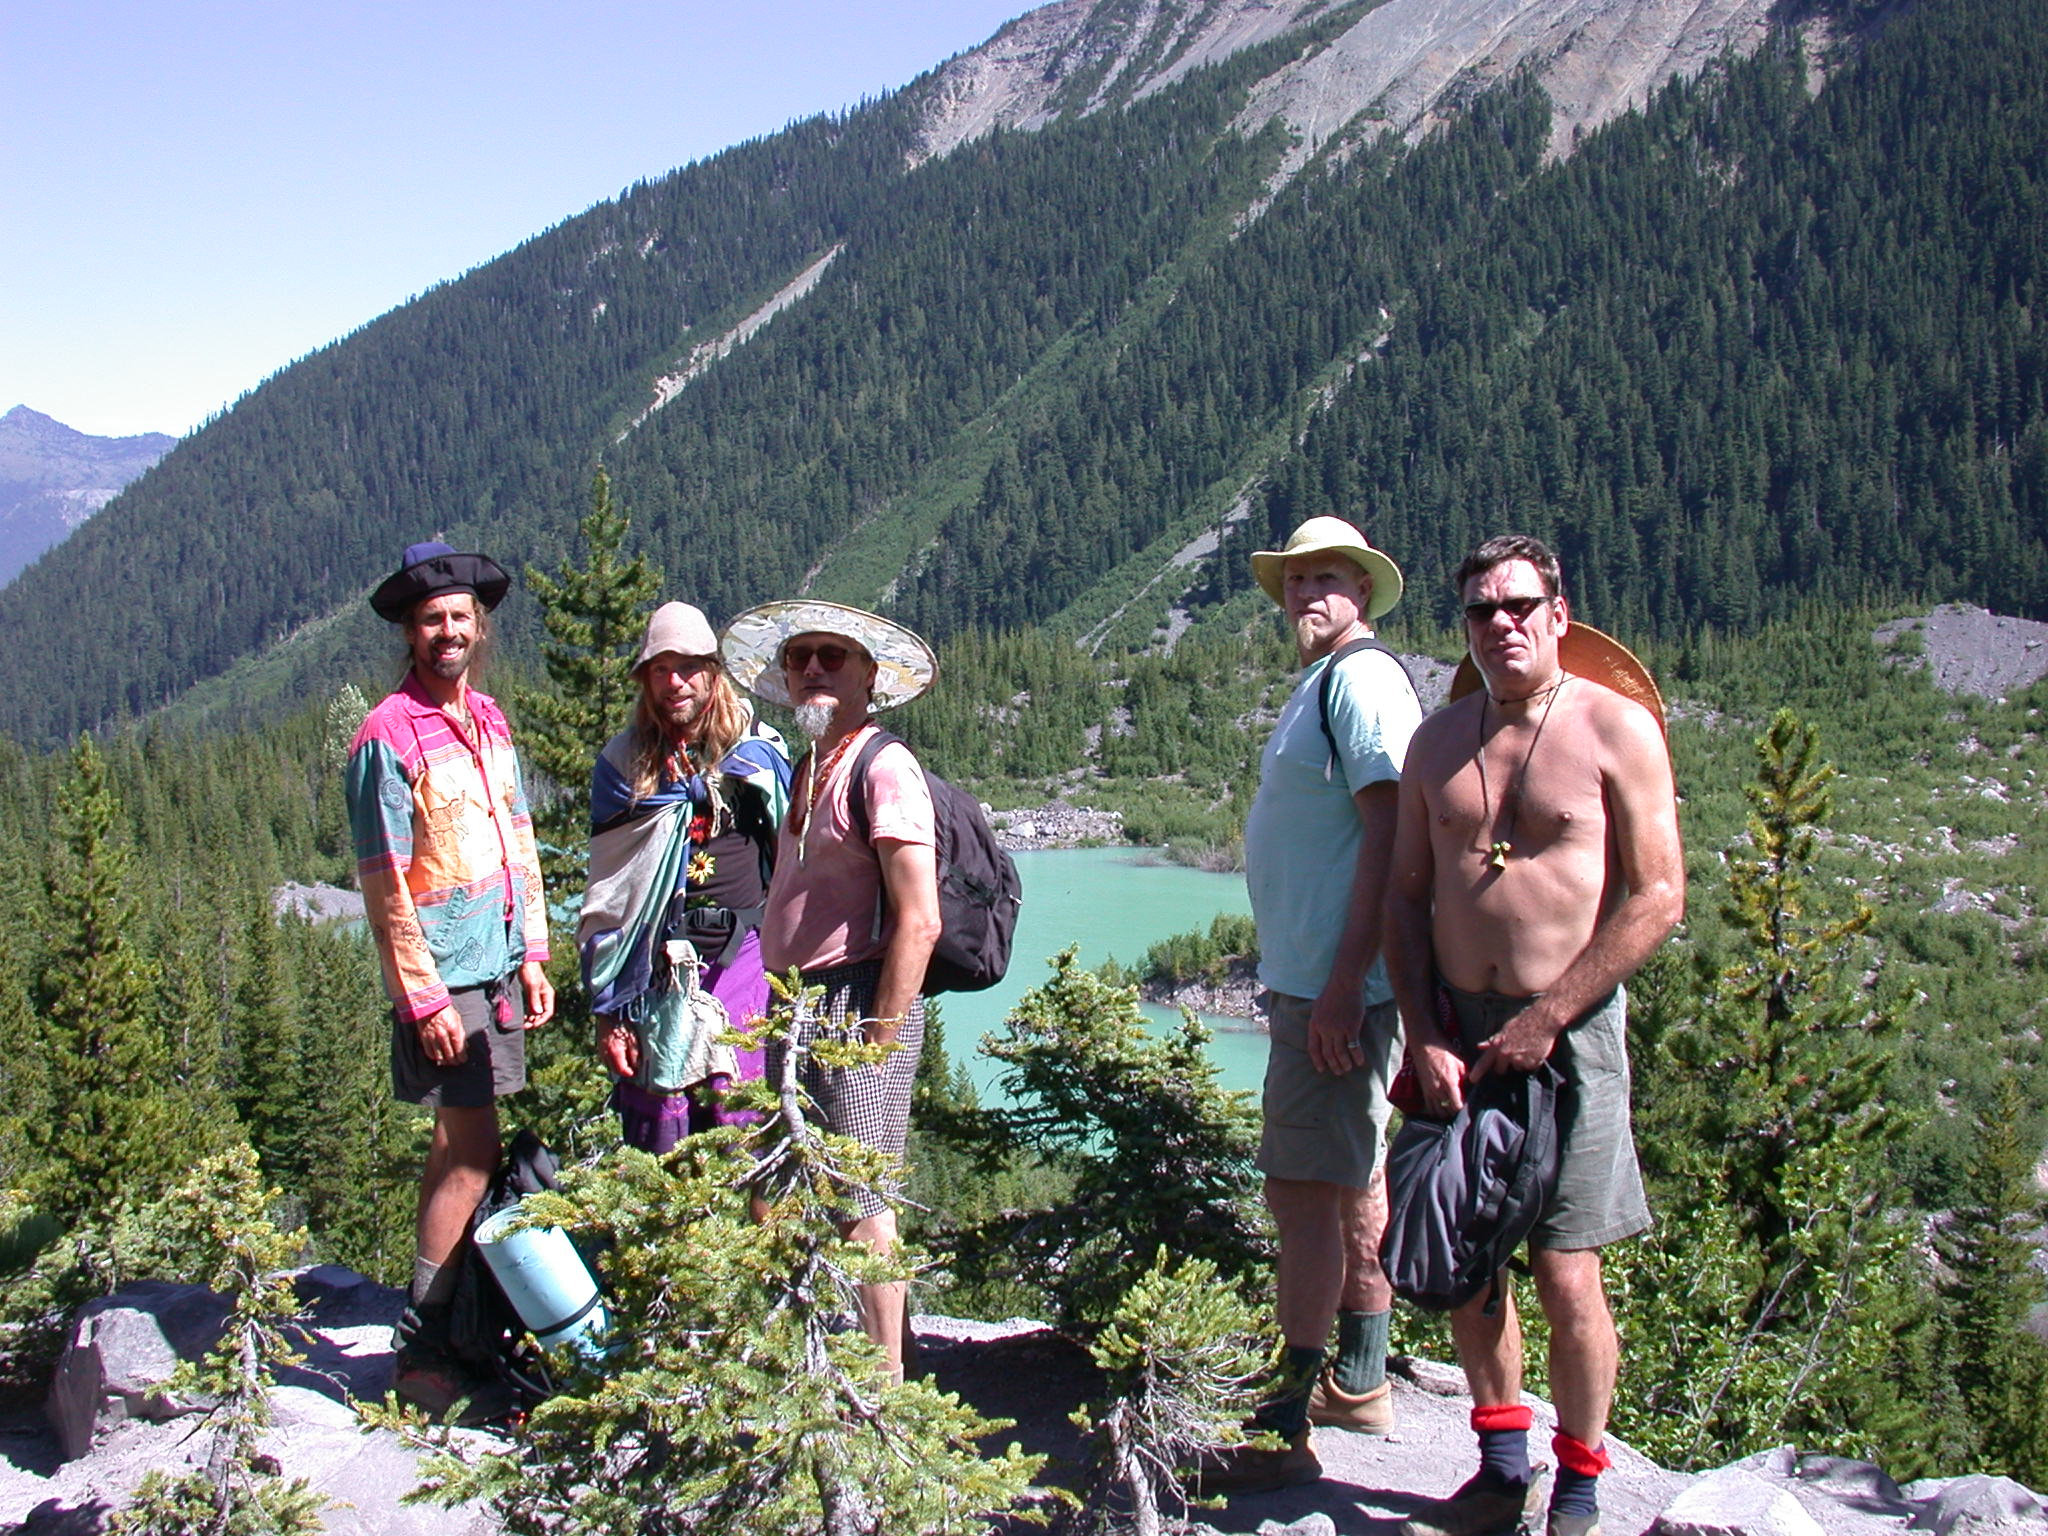 Fruitboy, Sierra, Mugwort, Dazzle, and Tusk on Glacier Lake Overlook of Mount Rainier